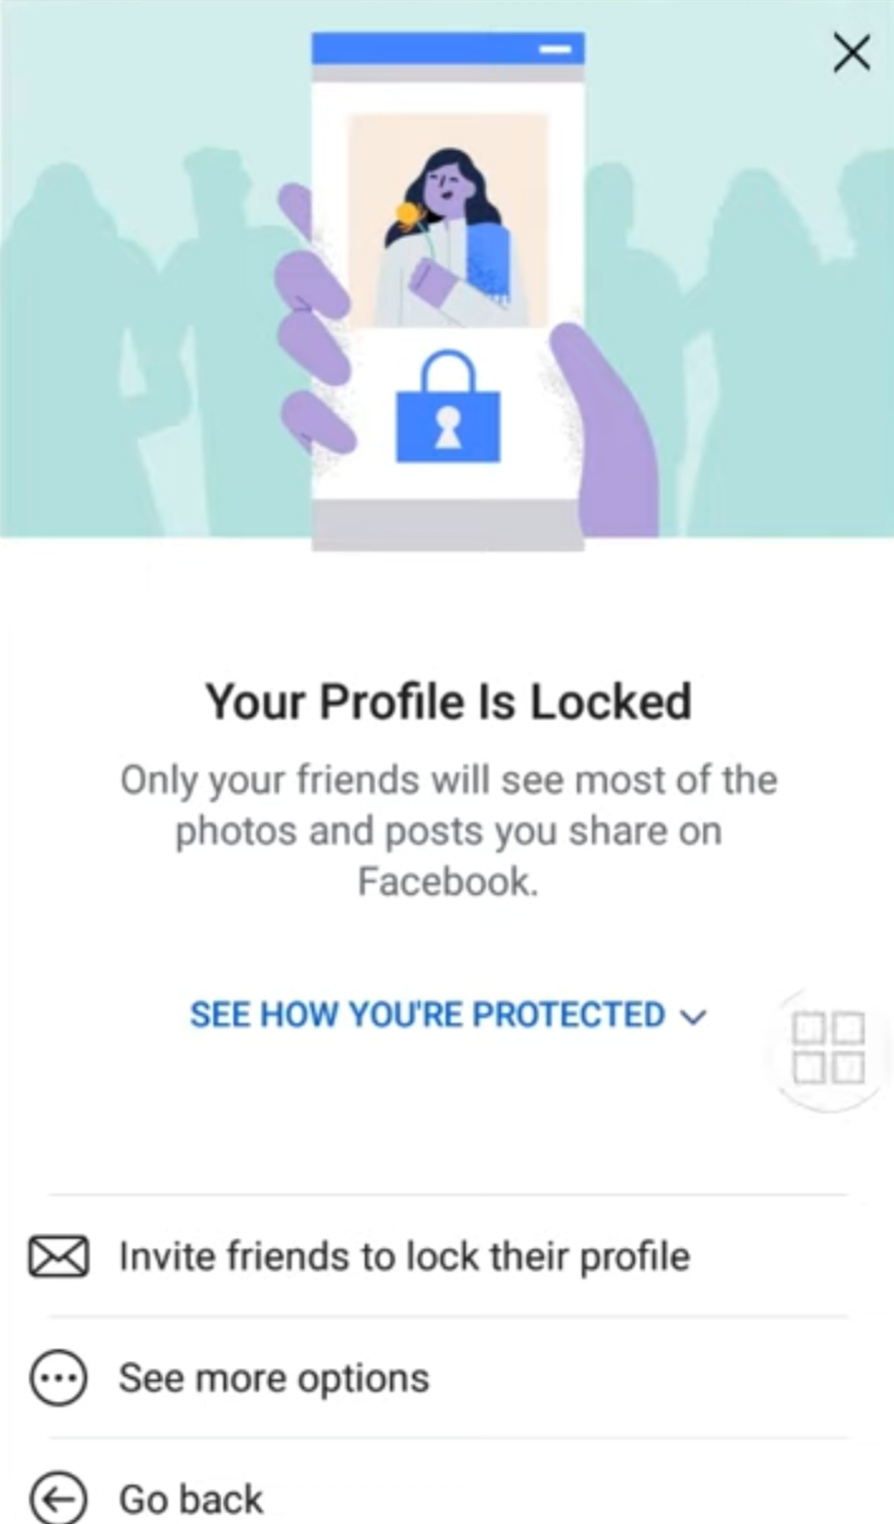 Invite friends for lock profile